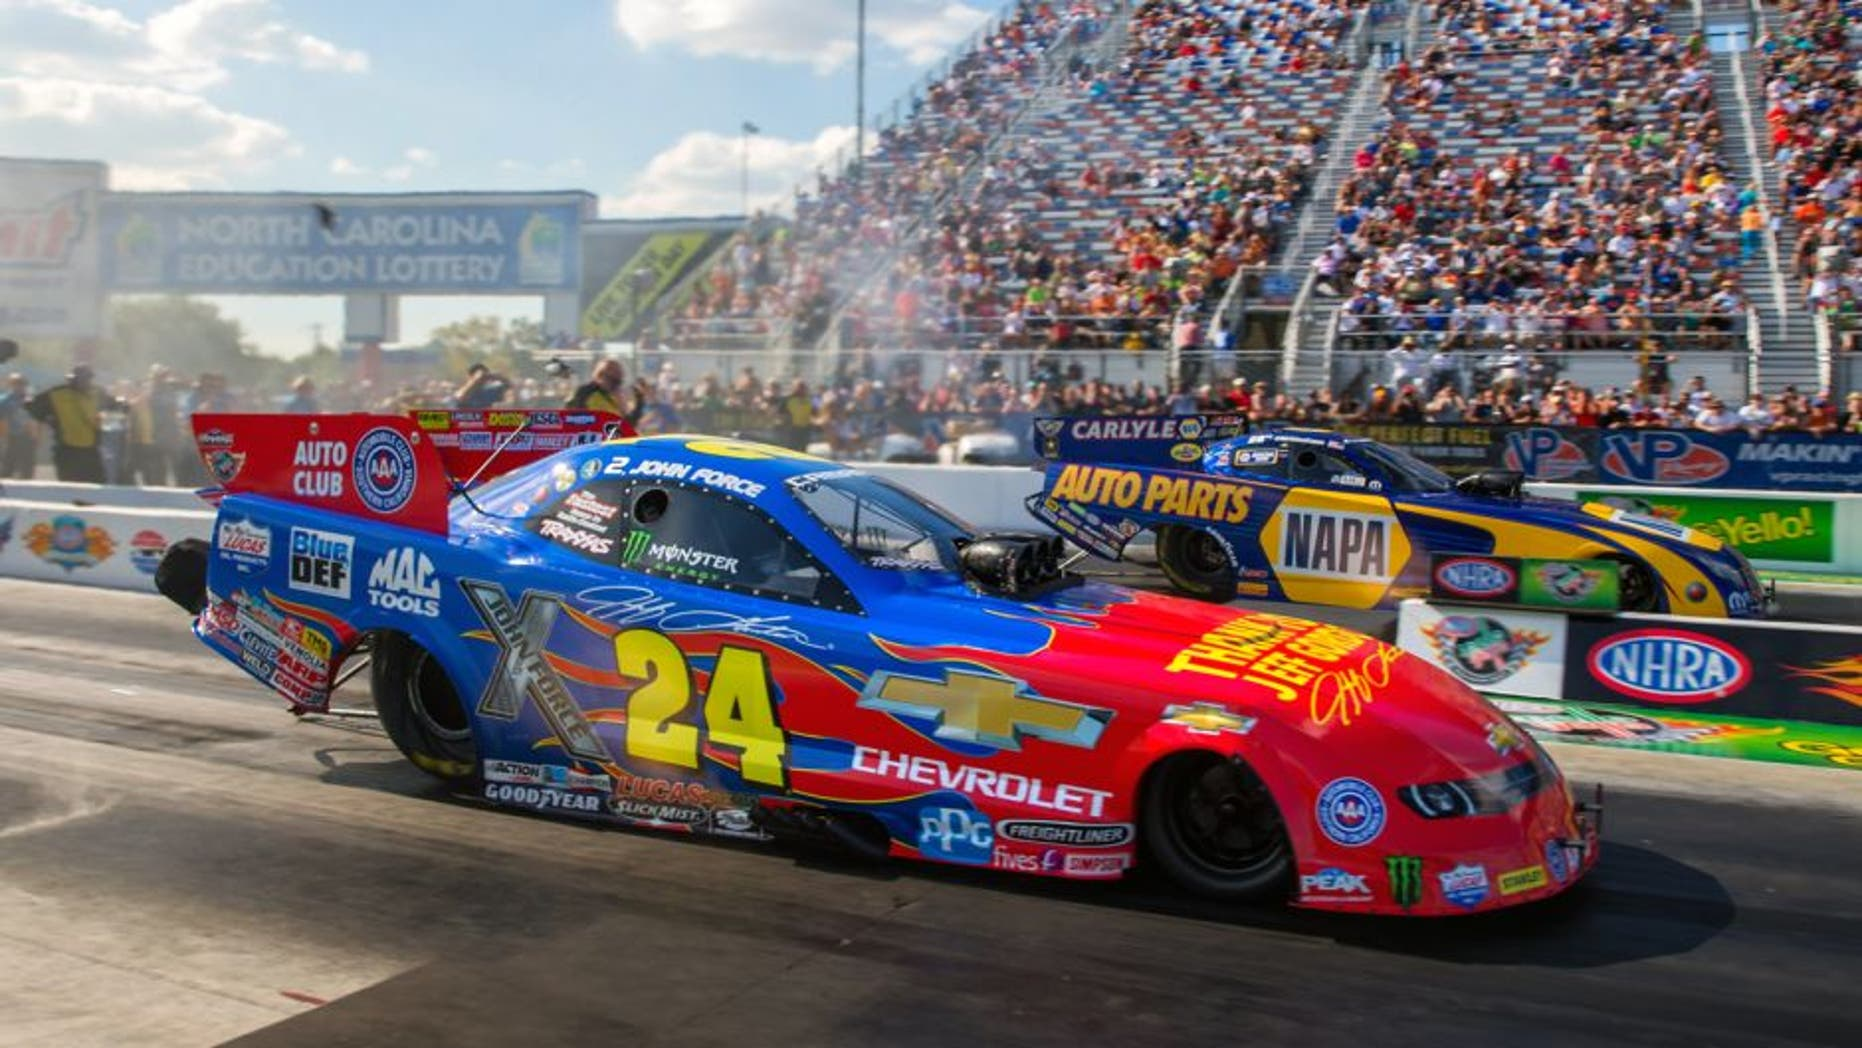 Sep 18, 2015; Concord, NC, USA; NHRA funny car driver John Force (near) in his special paint scheme honoring retiring NASCAR driver Jeff Gordon as he races alongside Ron Capps during qualifying for the Carolina Nationals at zMax Dragway. Mandatory Credit: Mark J. Rebilas-USA TODAY Sports